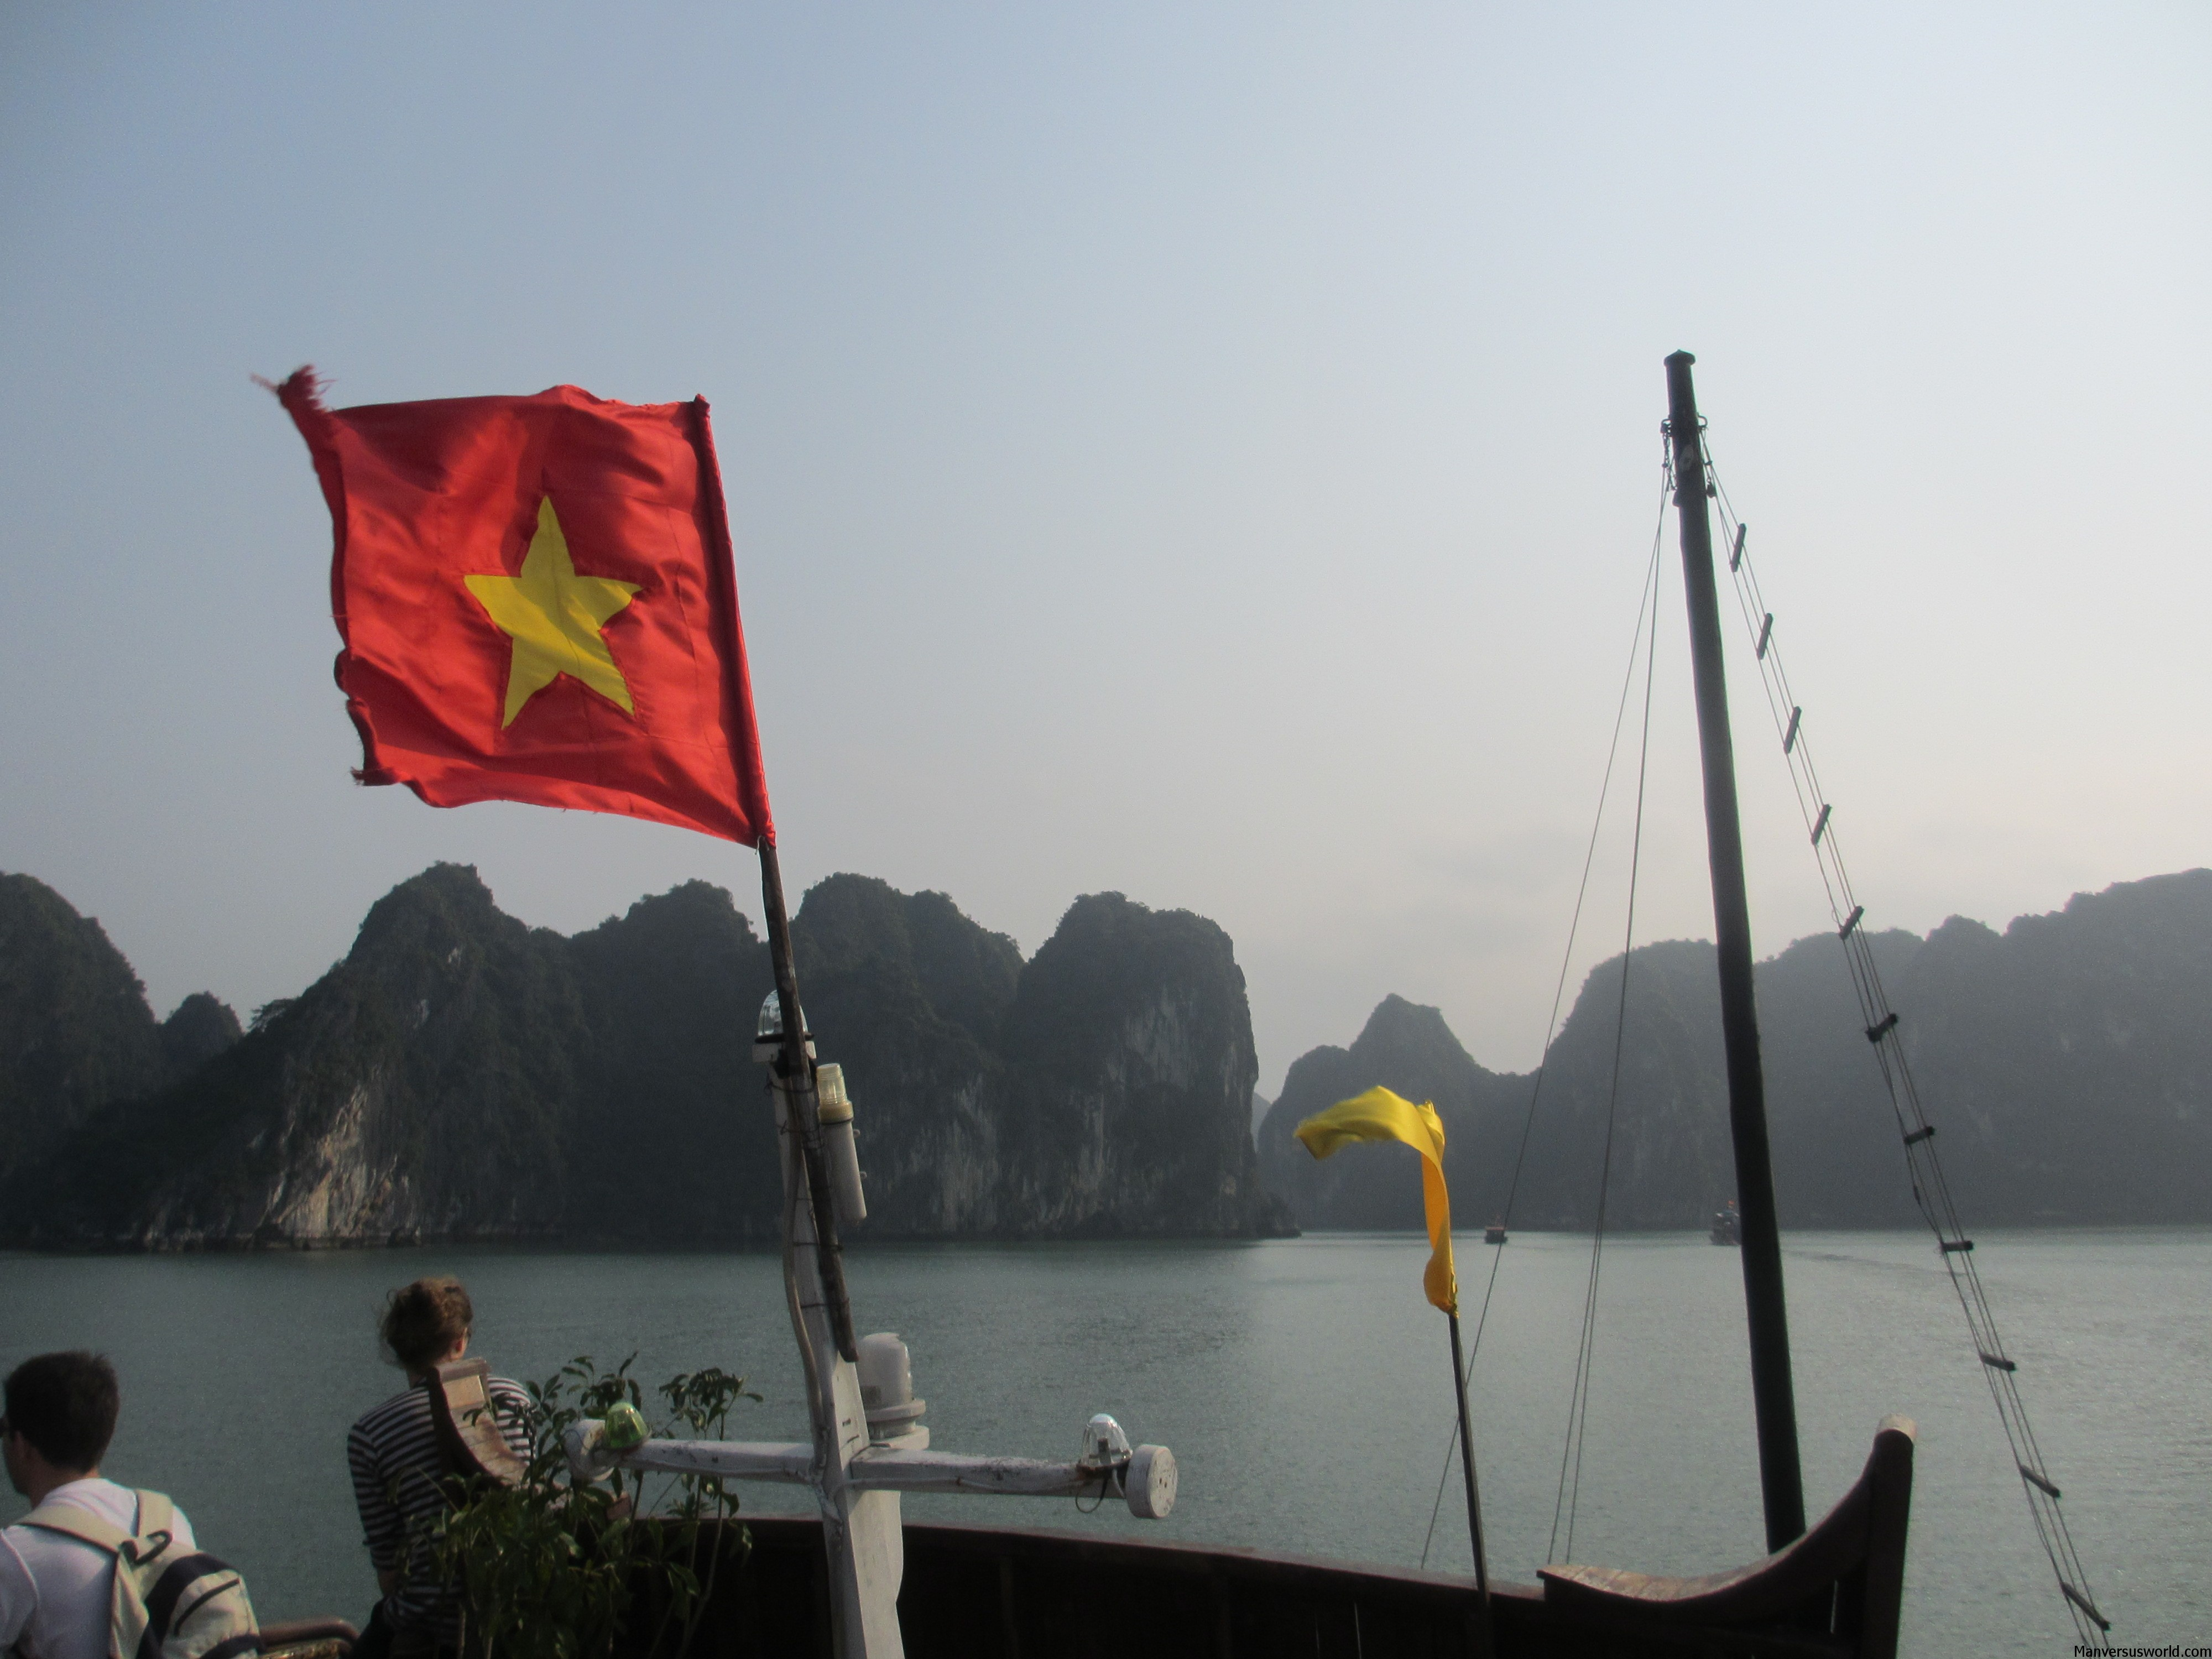 A Vietnamese flag in Halong Bay